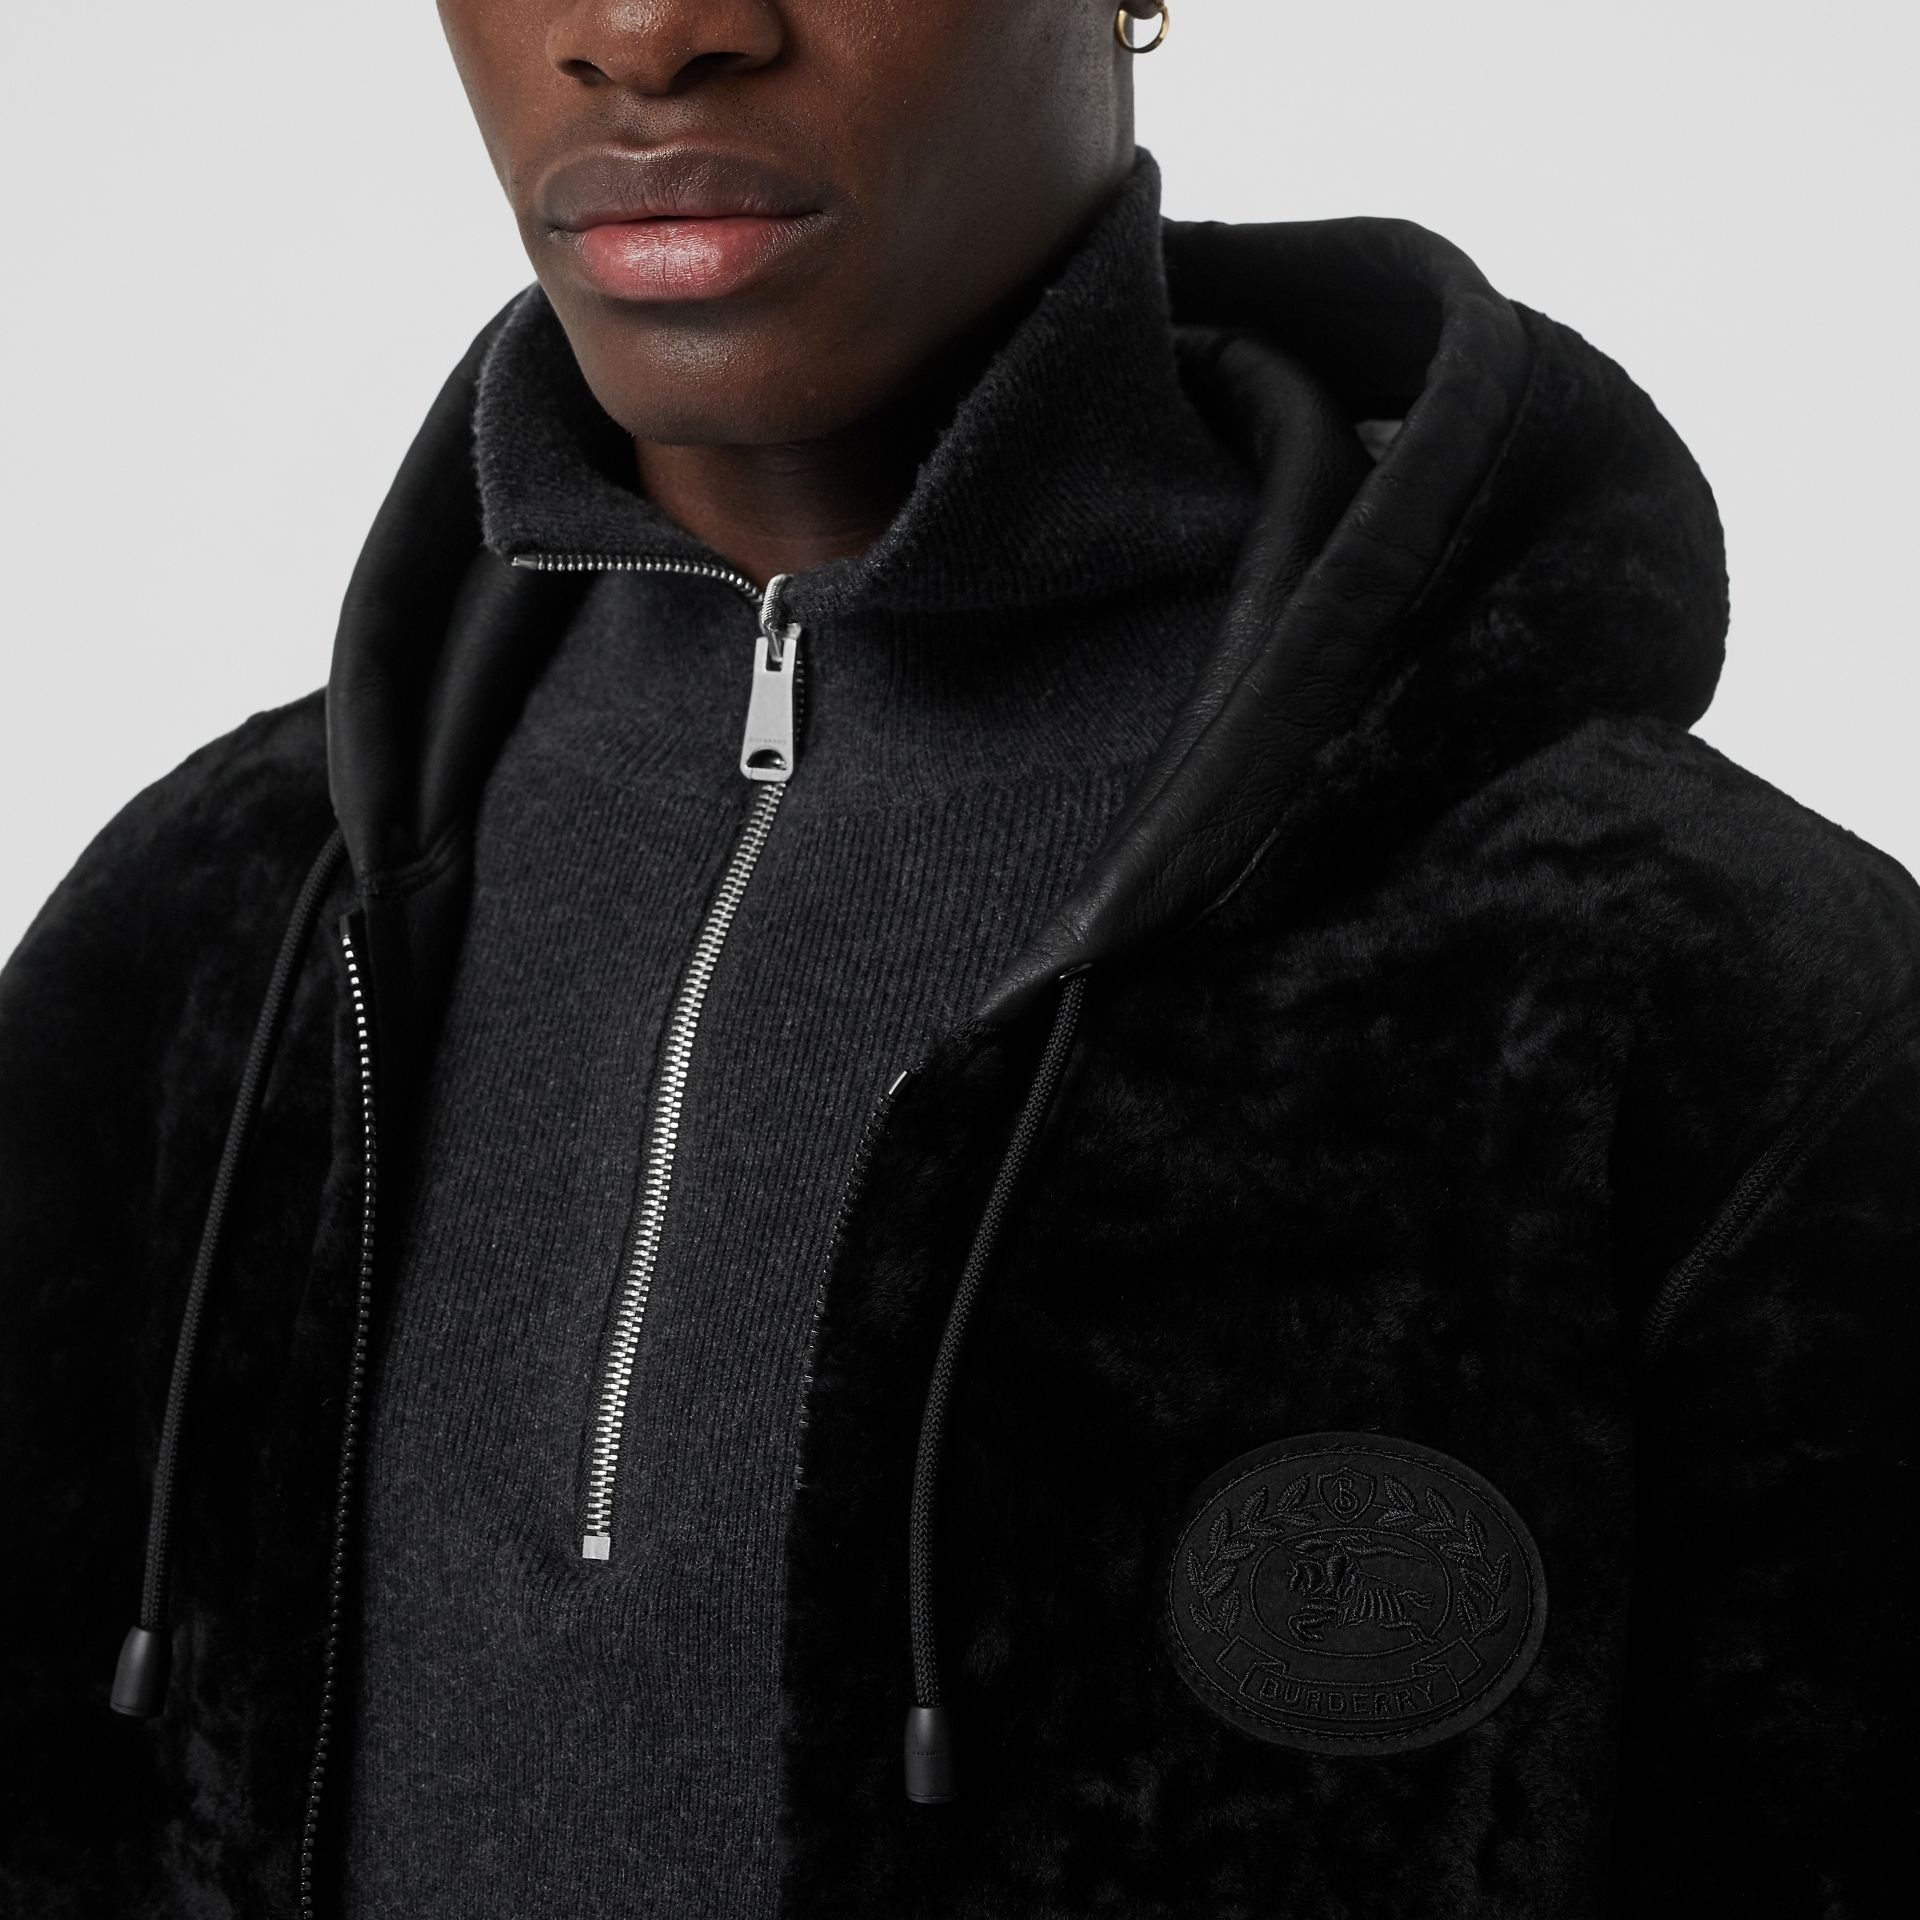 Reversible Shearling Hooded Bomber Jacket in Black - Men | Burberry United Kingdom - gallery image 1